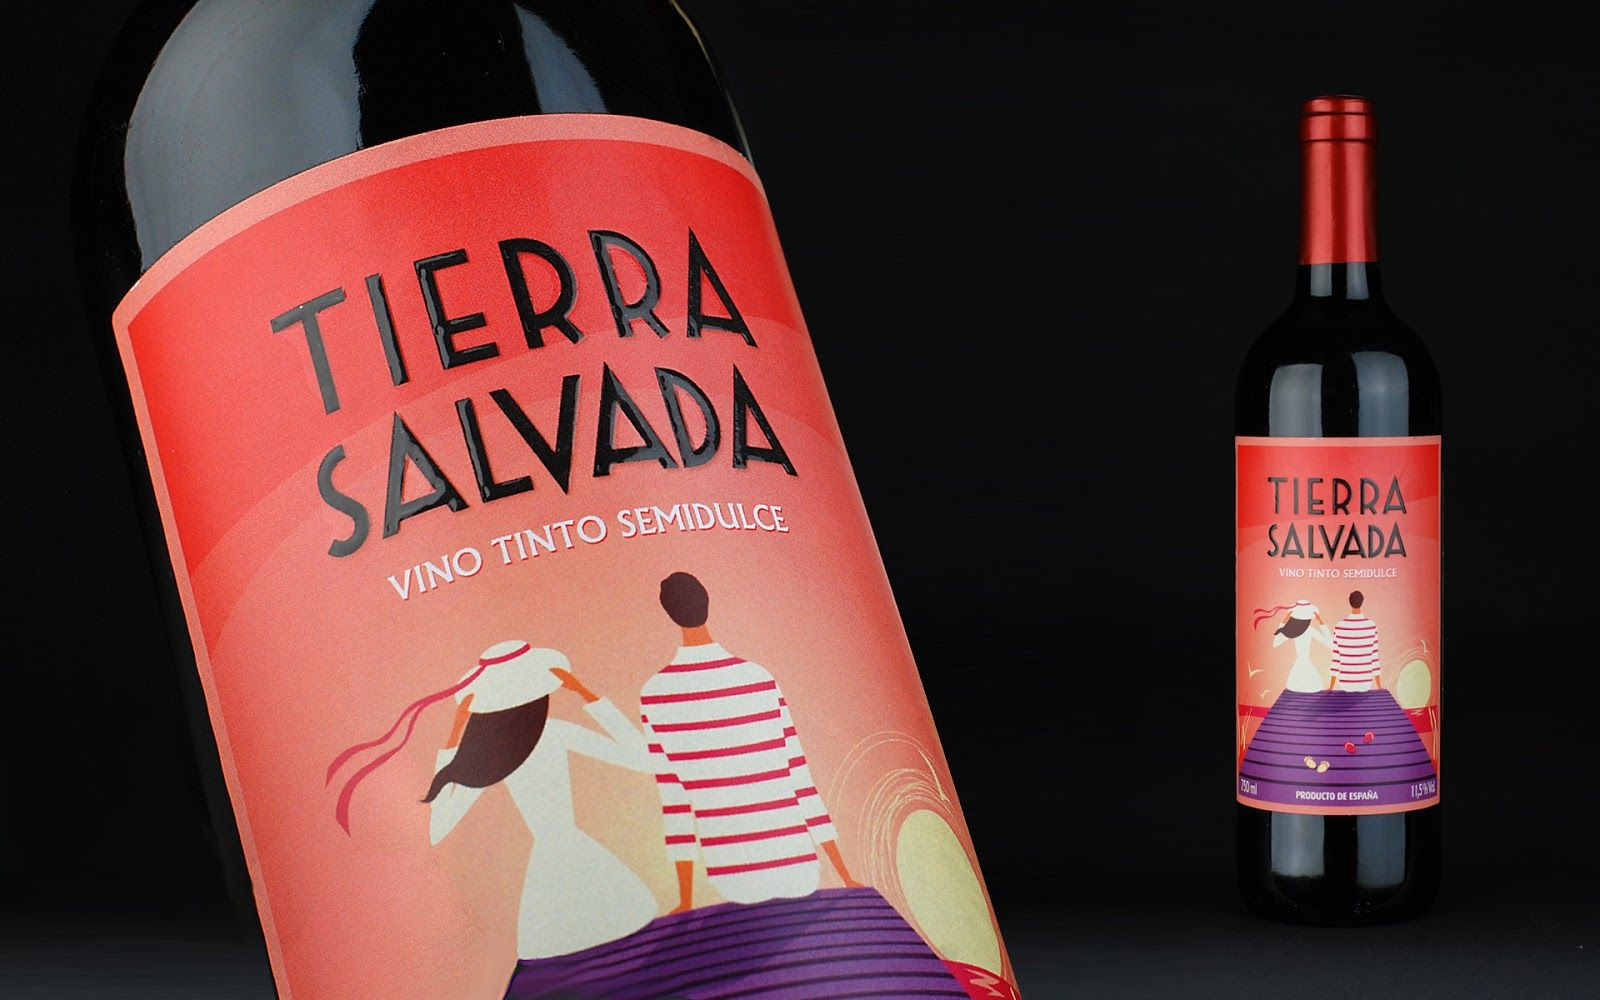 Tierra Salvada Creative Packaging Design Packaging Design Inspiration Packaging Design